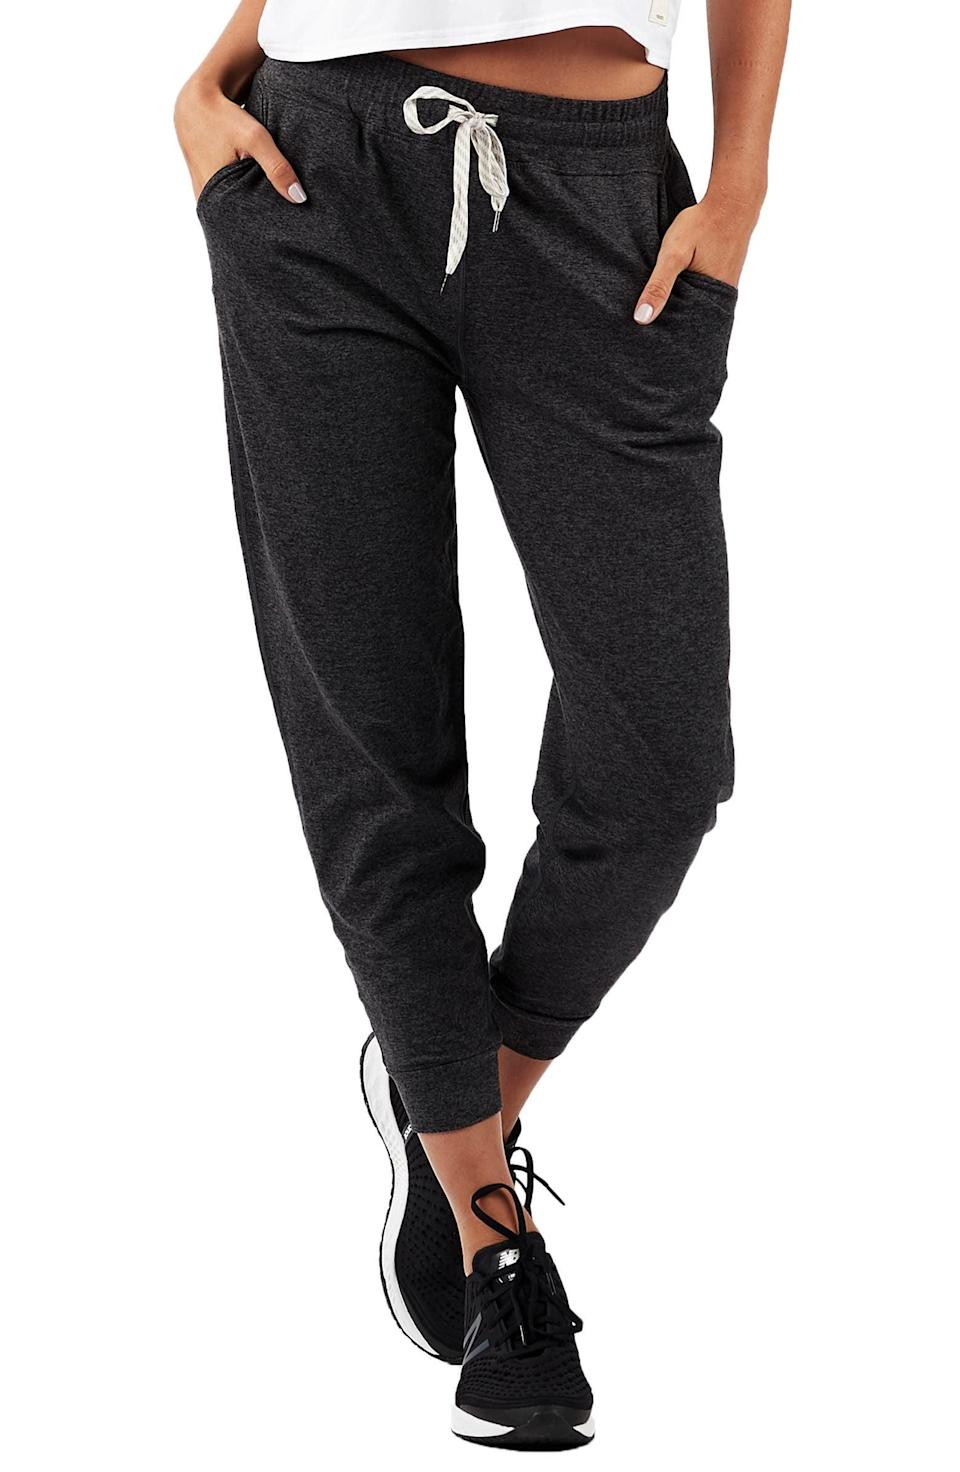 <p>They'll appreciate these soft and comfortable <span>Vuori Pocket Performance Joggers</span> ($84). It's the perfect work-from-home uniform that comes in a variety of colors.</p>